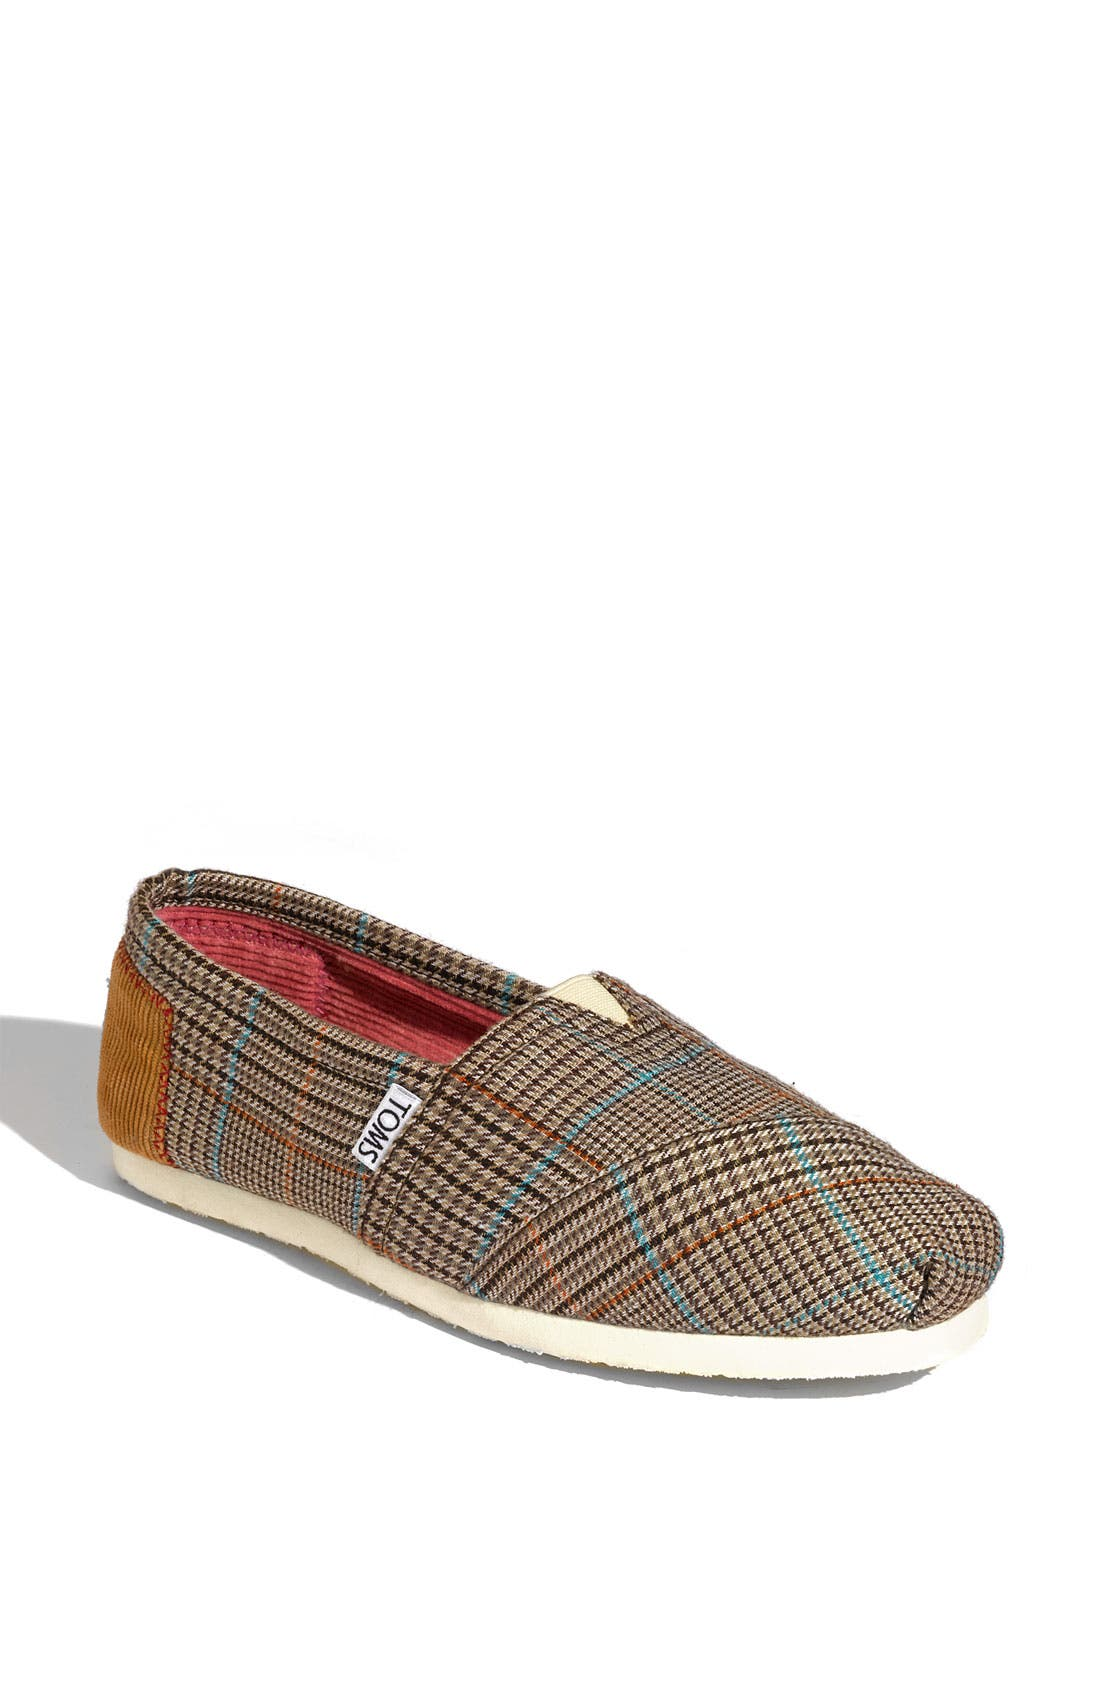 'Classic - Academy Plaid' Slip-On, Main, color, 200